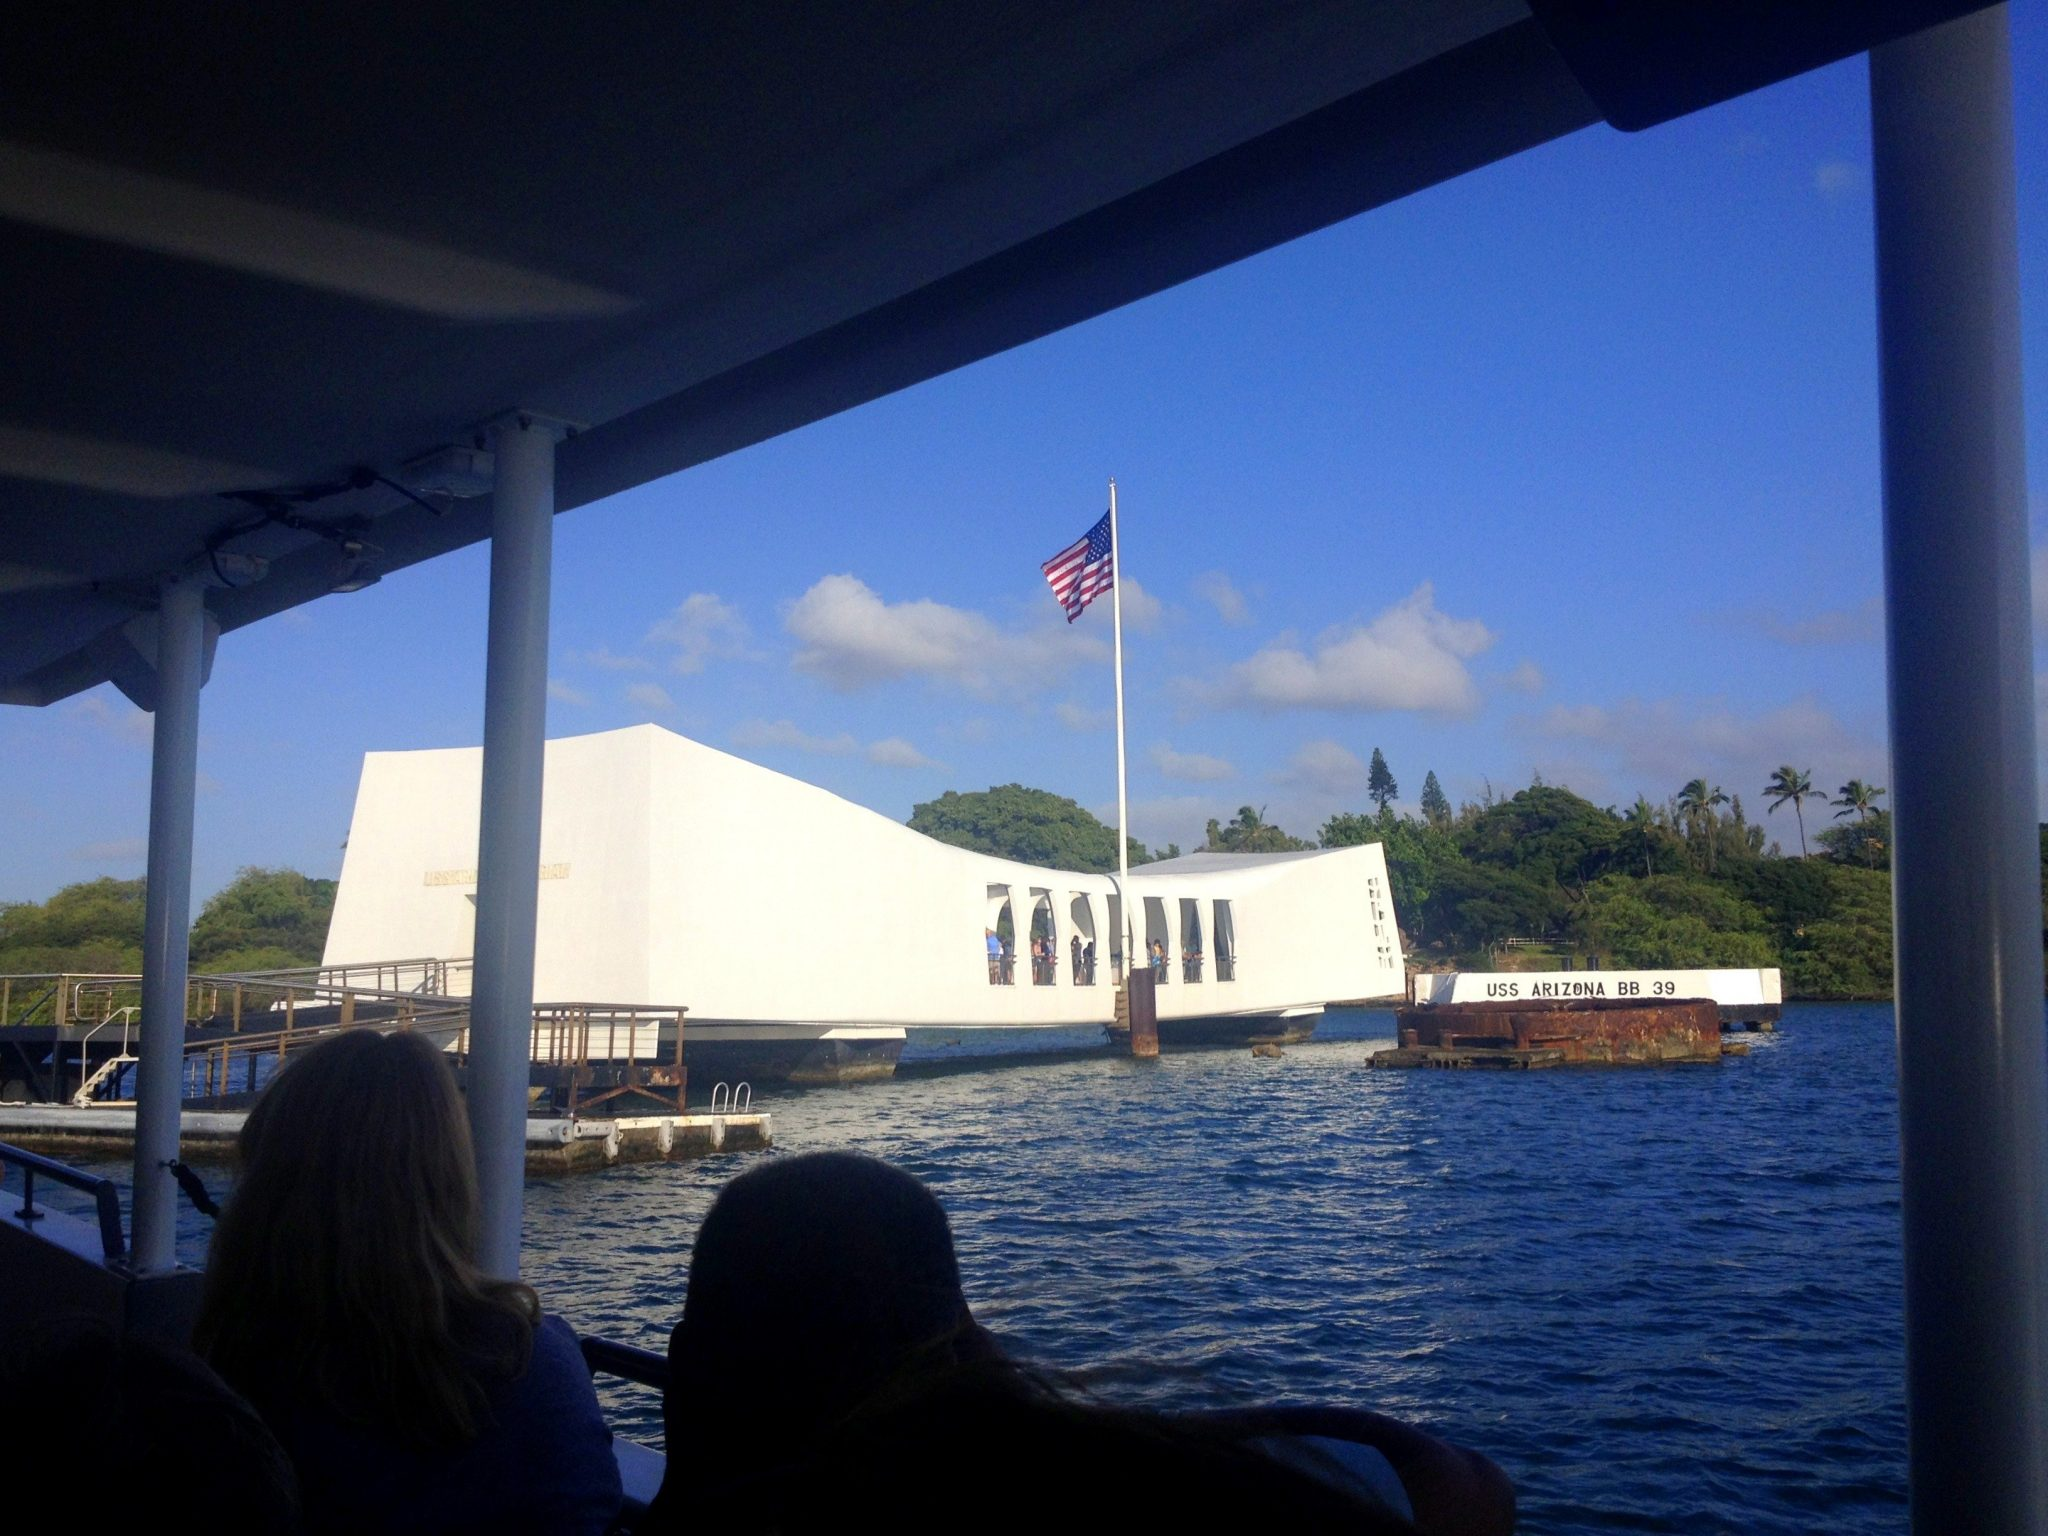 USS Arizona Memorial - Pearl Harbor, Oahu, Hawaii